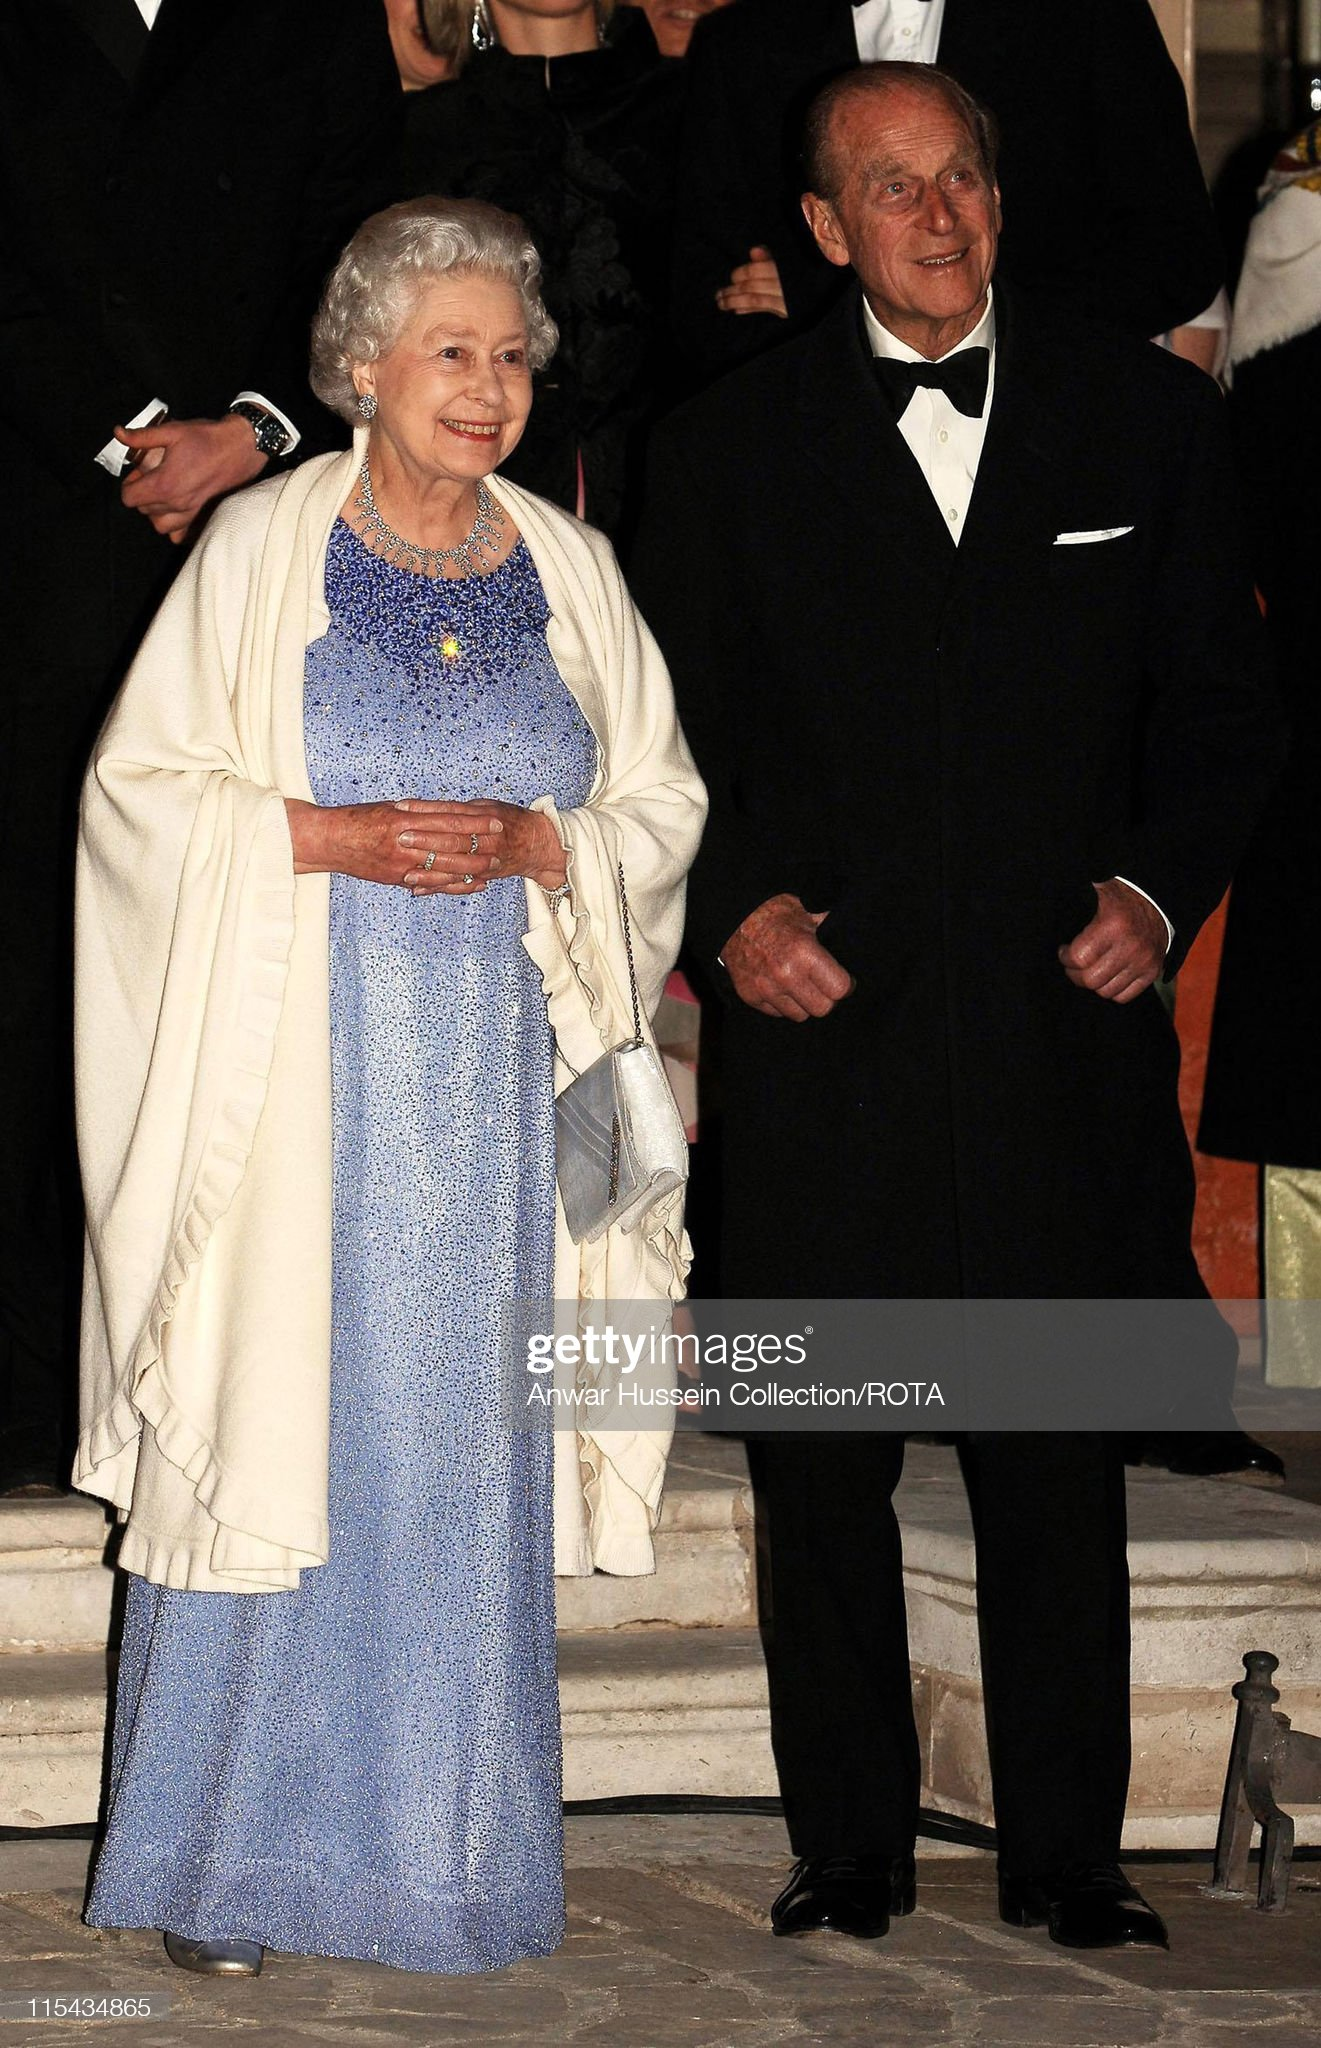 Private Dinner to Celebrate the Queen's 80th Birthday : News Photo